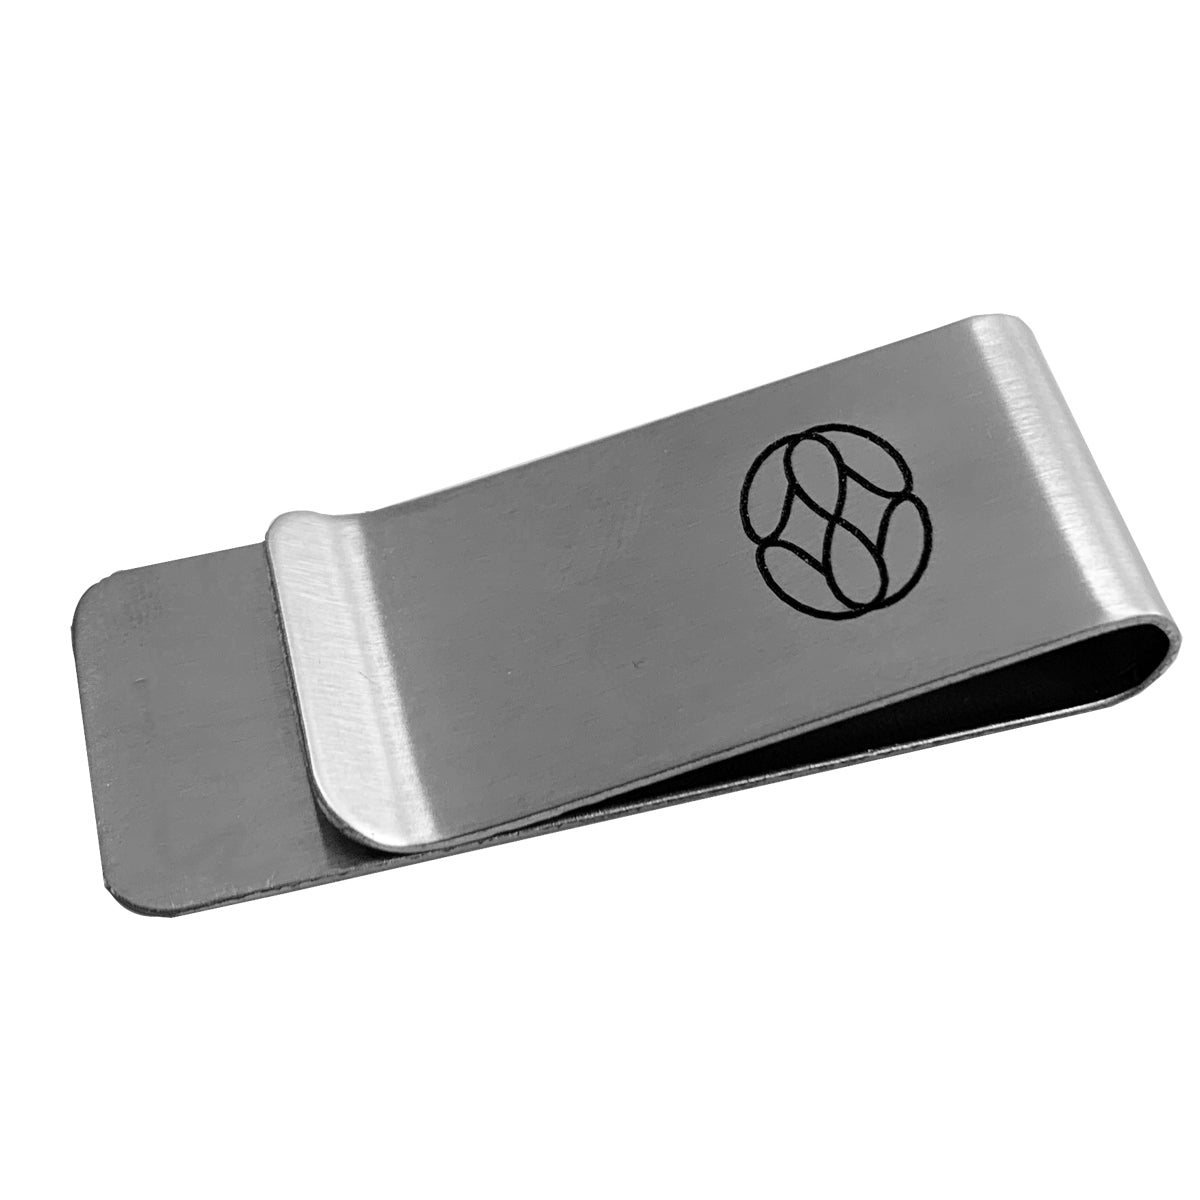 Money Clip Stainless Steel 2 x .80 inches